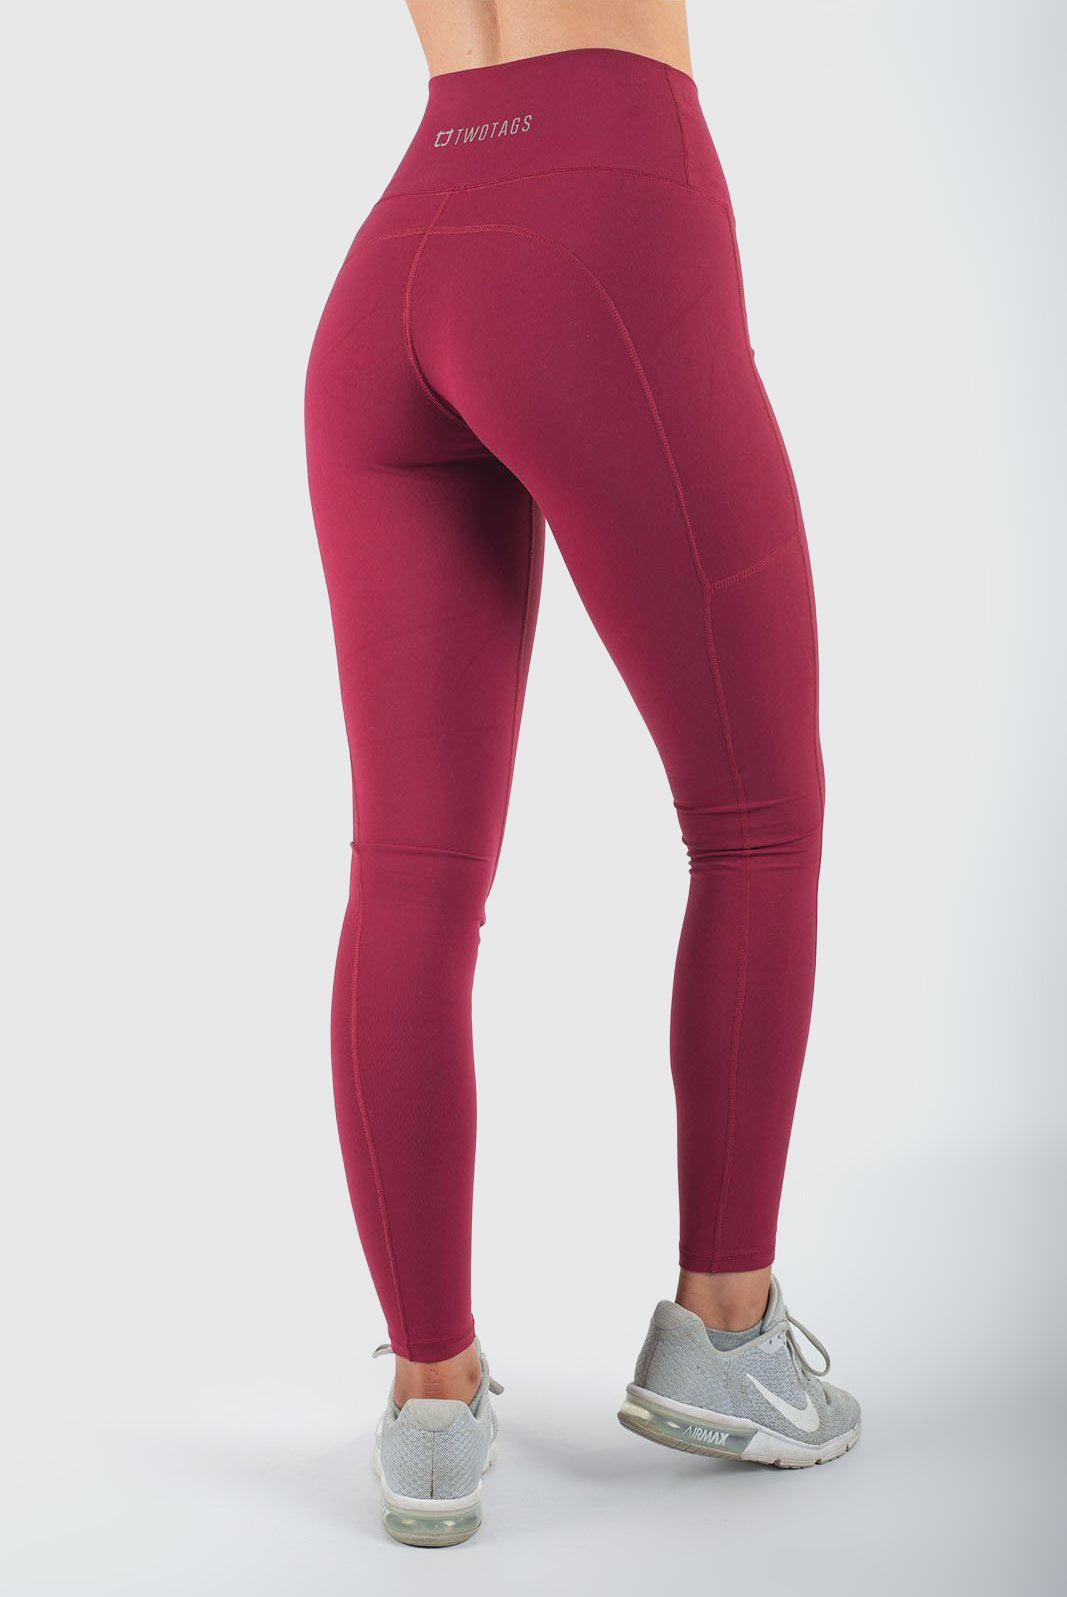 aaf104cf6c Core V2 Highwaisted Leggings - Cherry – Twotags